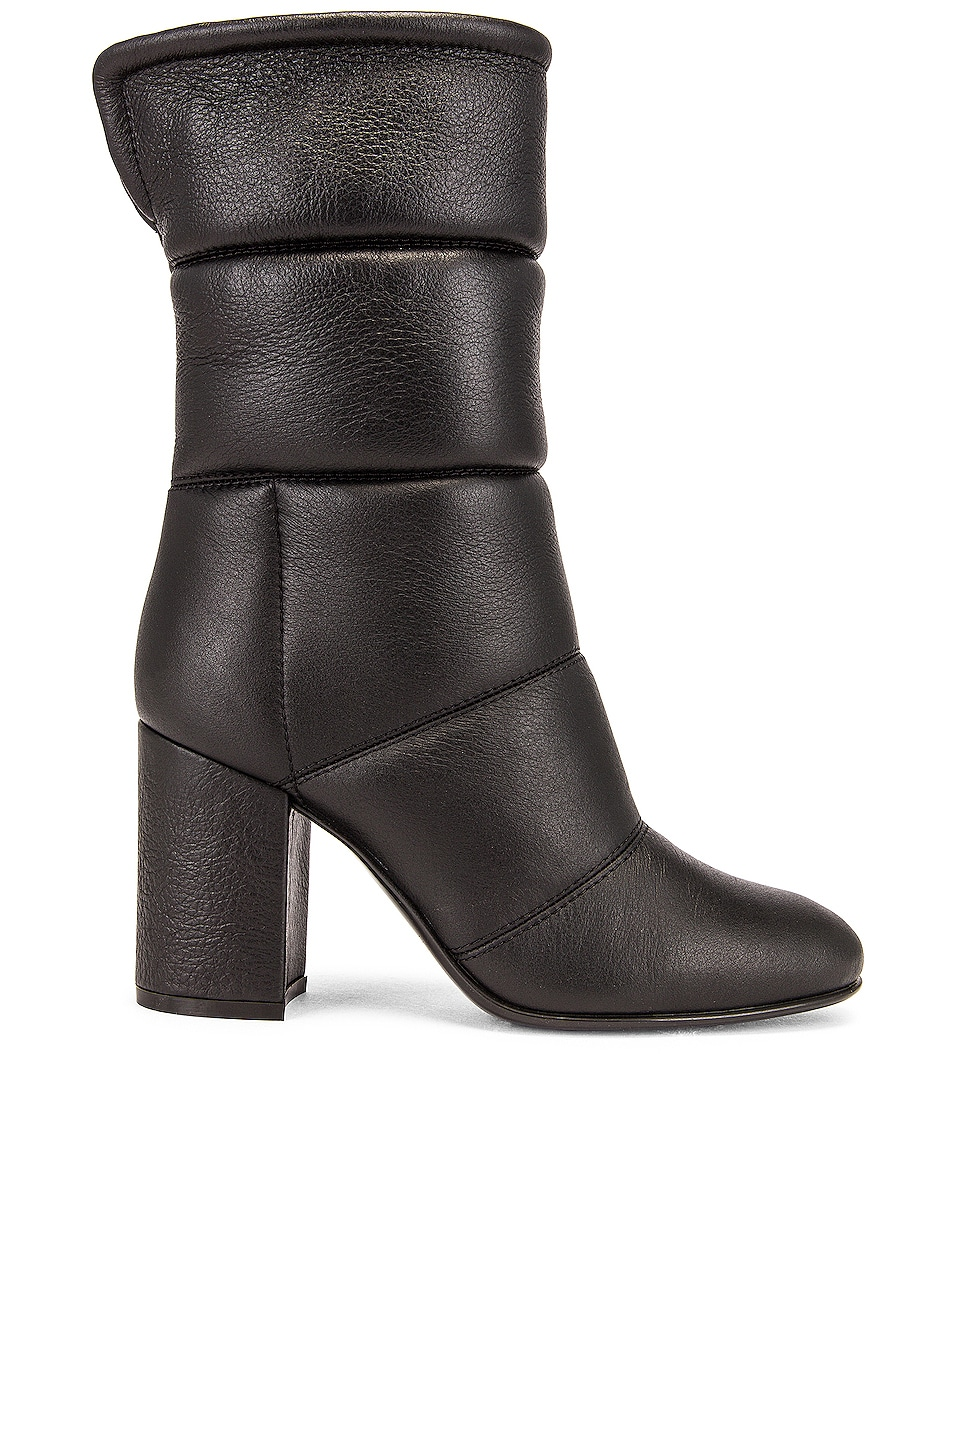 Image 1 of Gianvito Rossi Shearling Mid Calf Boots in Black